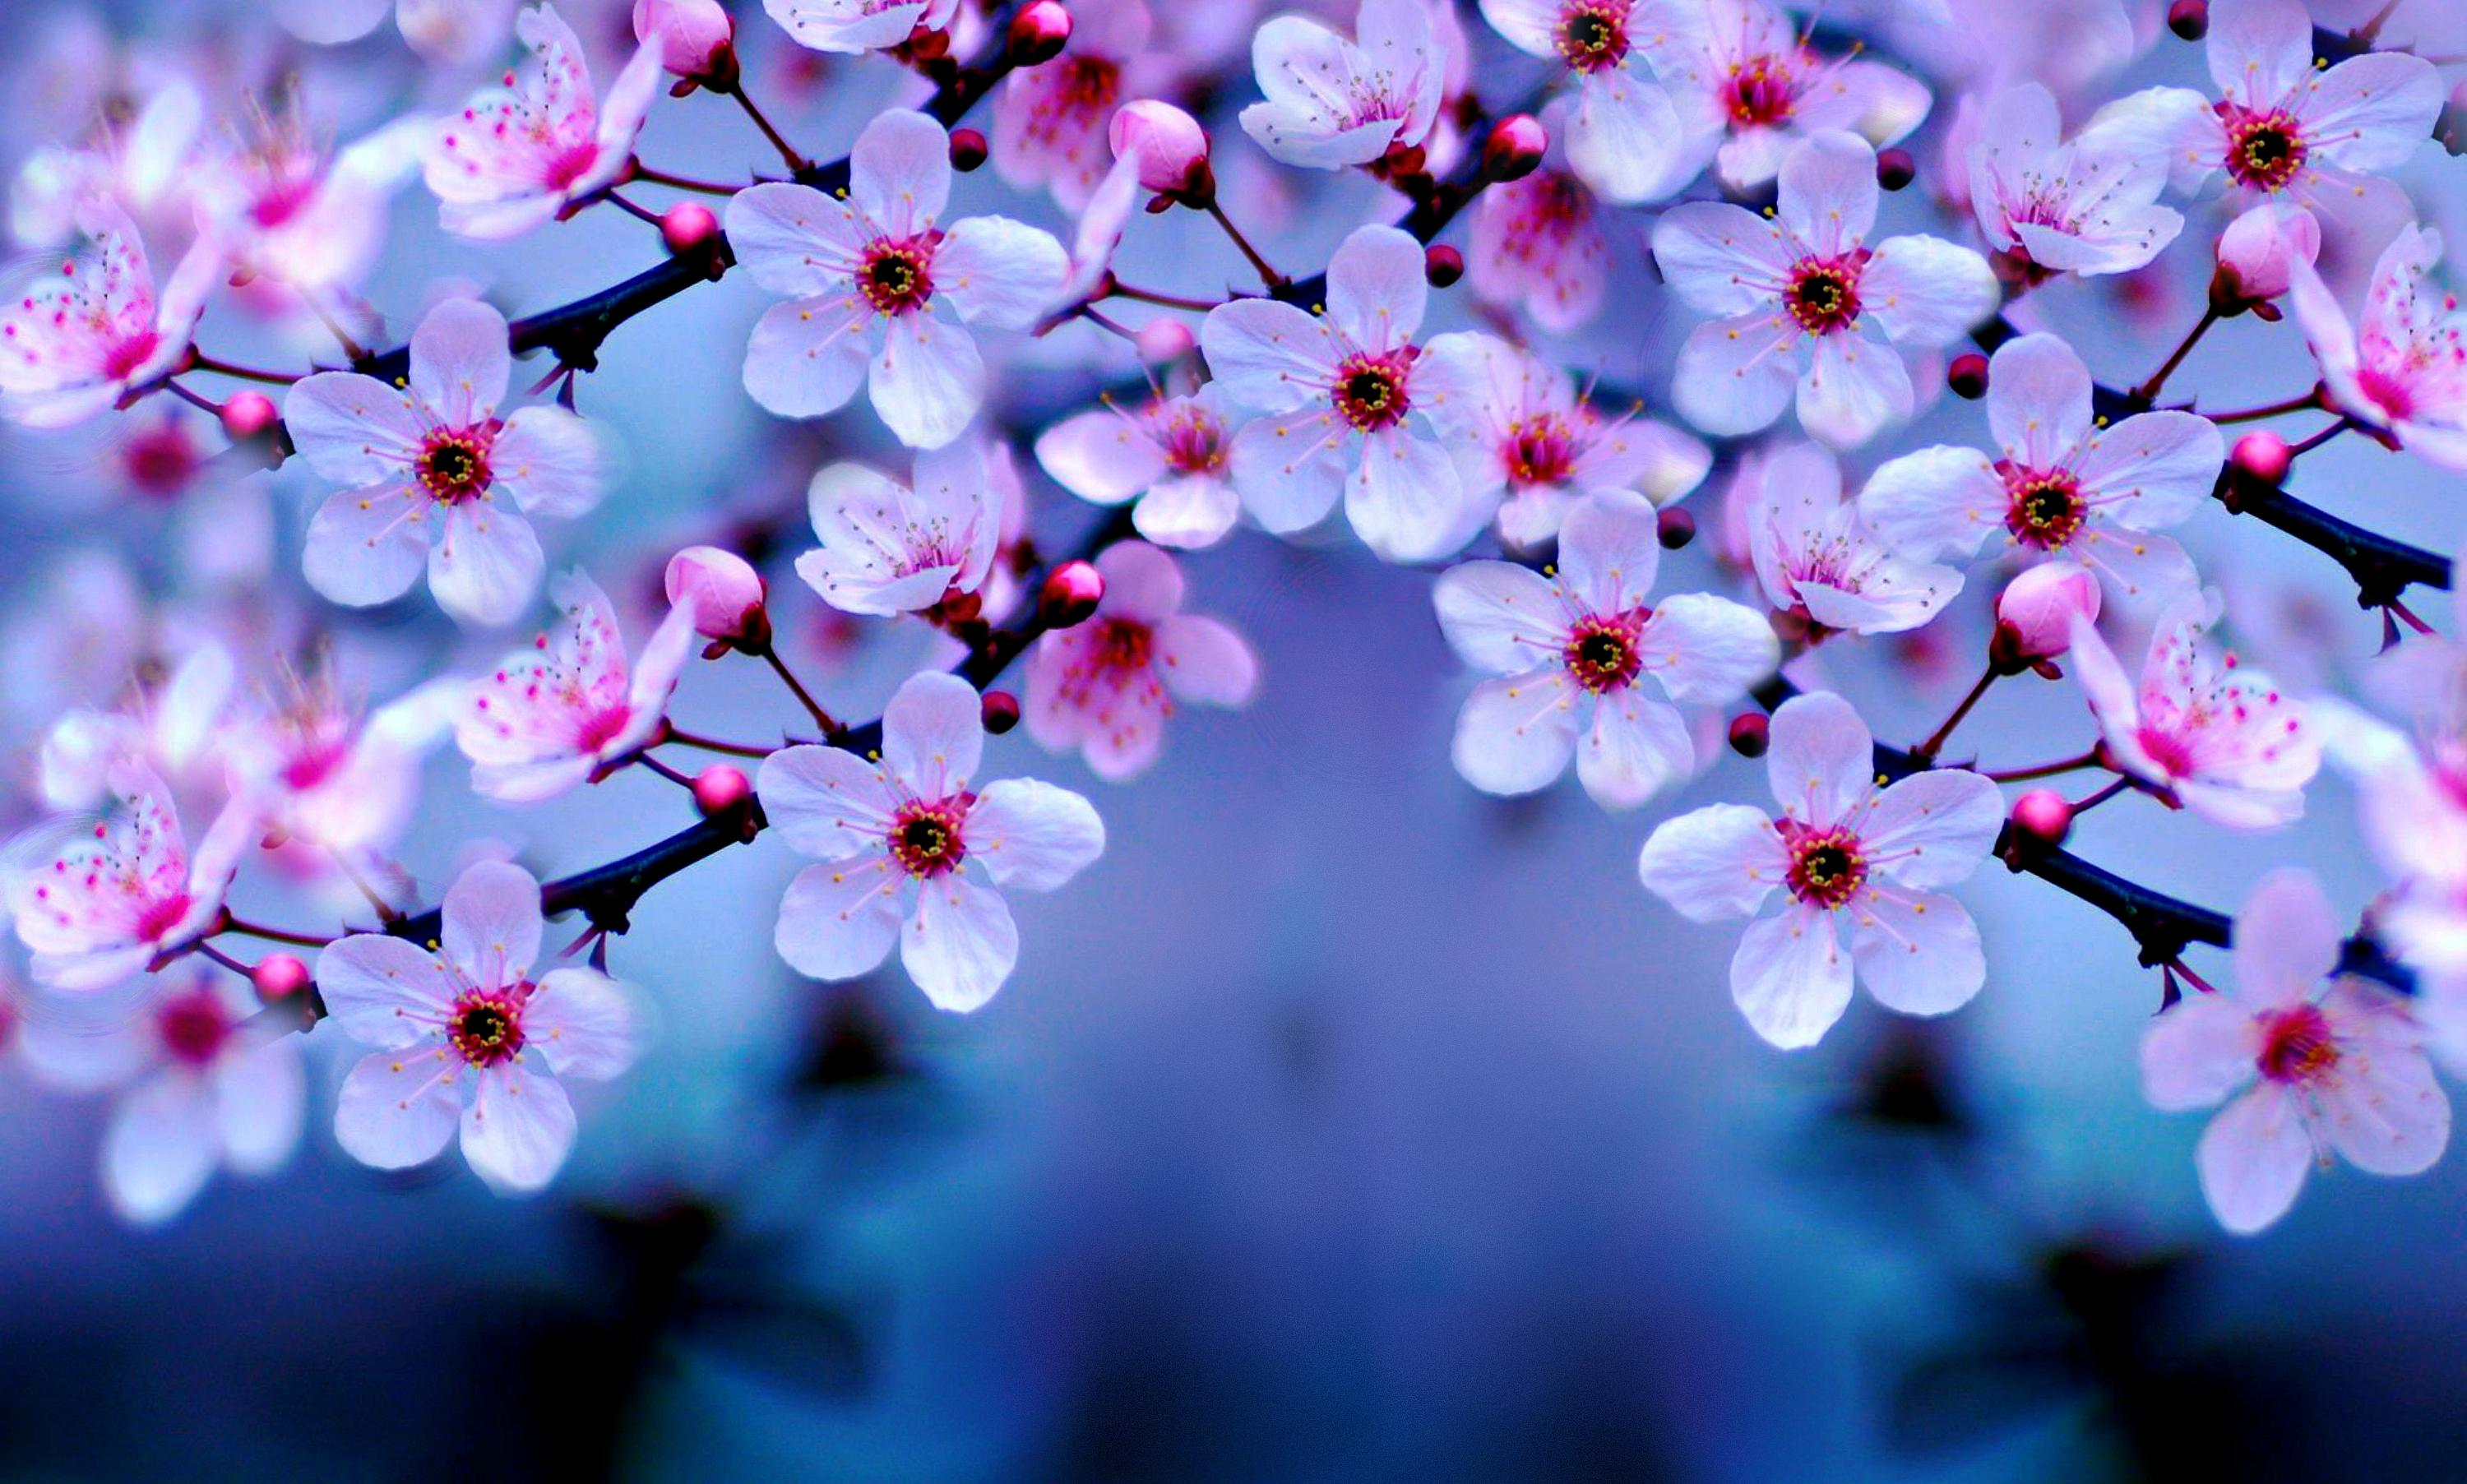 Wallpapers Cherry Blossom Cherry Blossom 4k Hd Flowers 4k Wallpapers Images Backgrounds